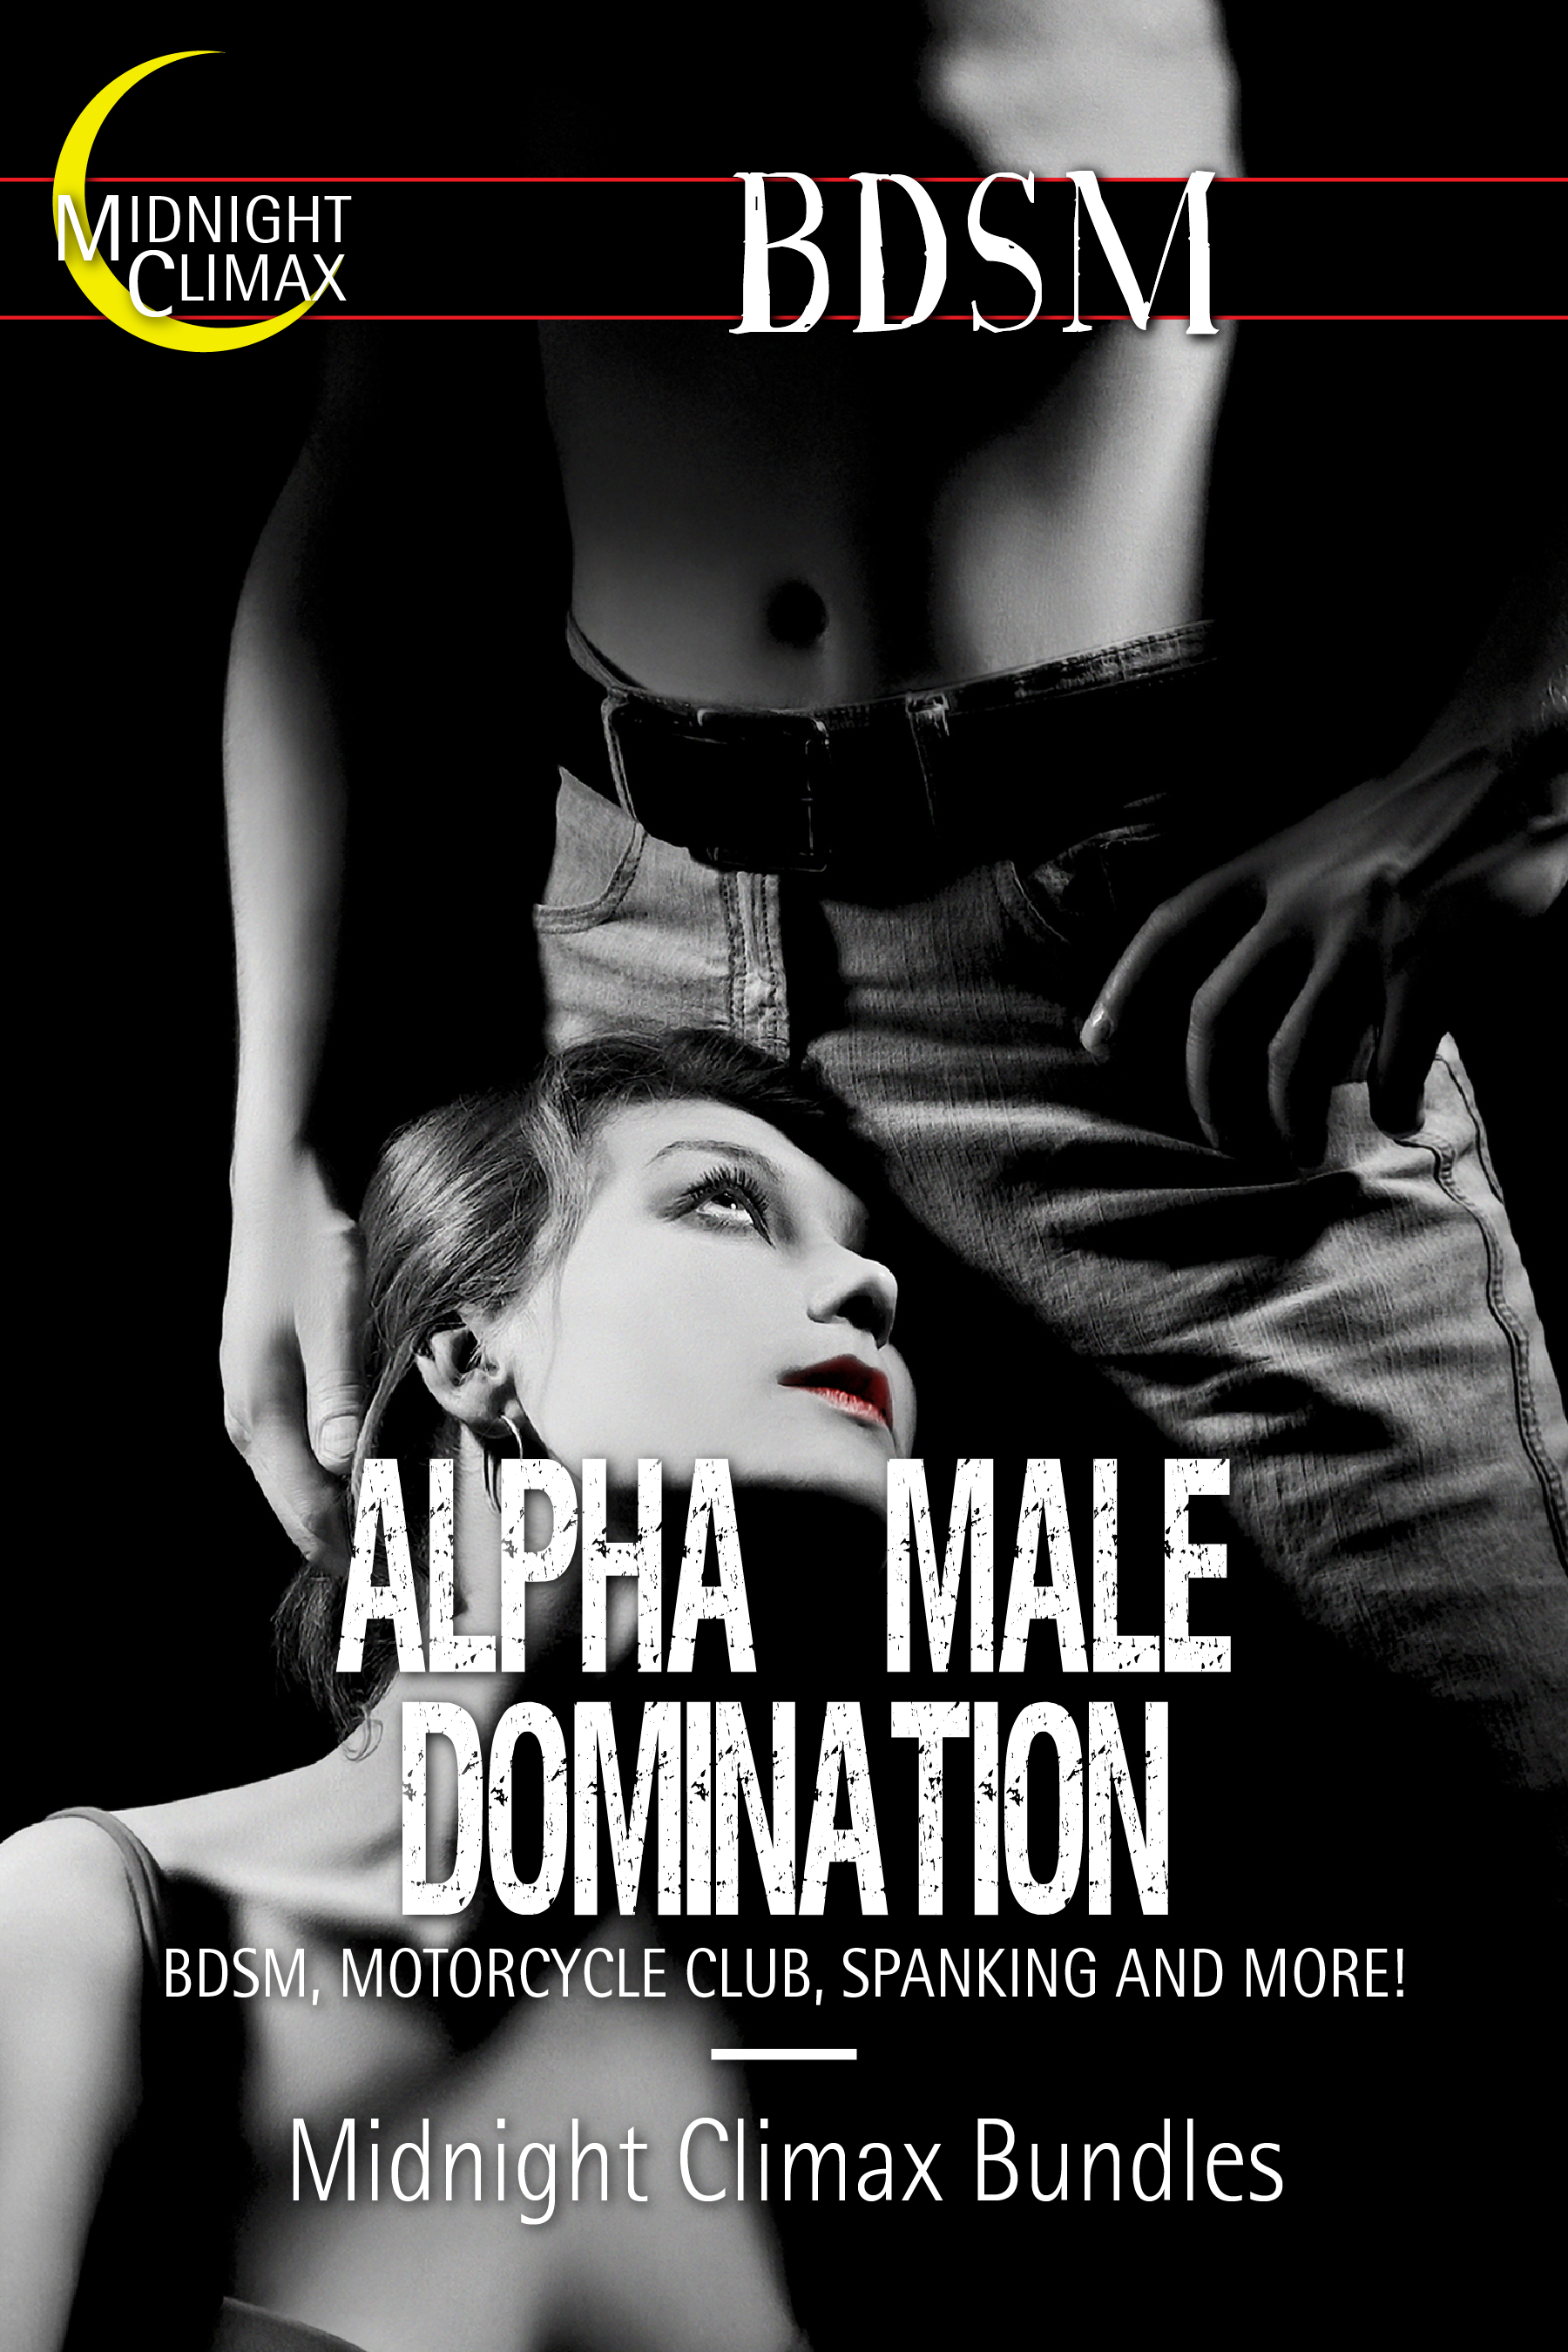 Midnight Climax Bundles - Alpha Male Domination (BDSM, Motorcycle Club, Spanking and More!)